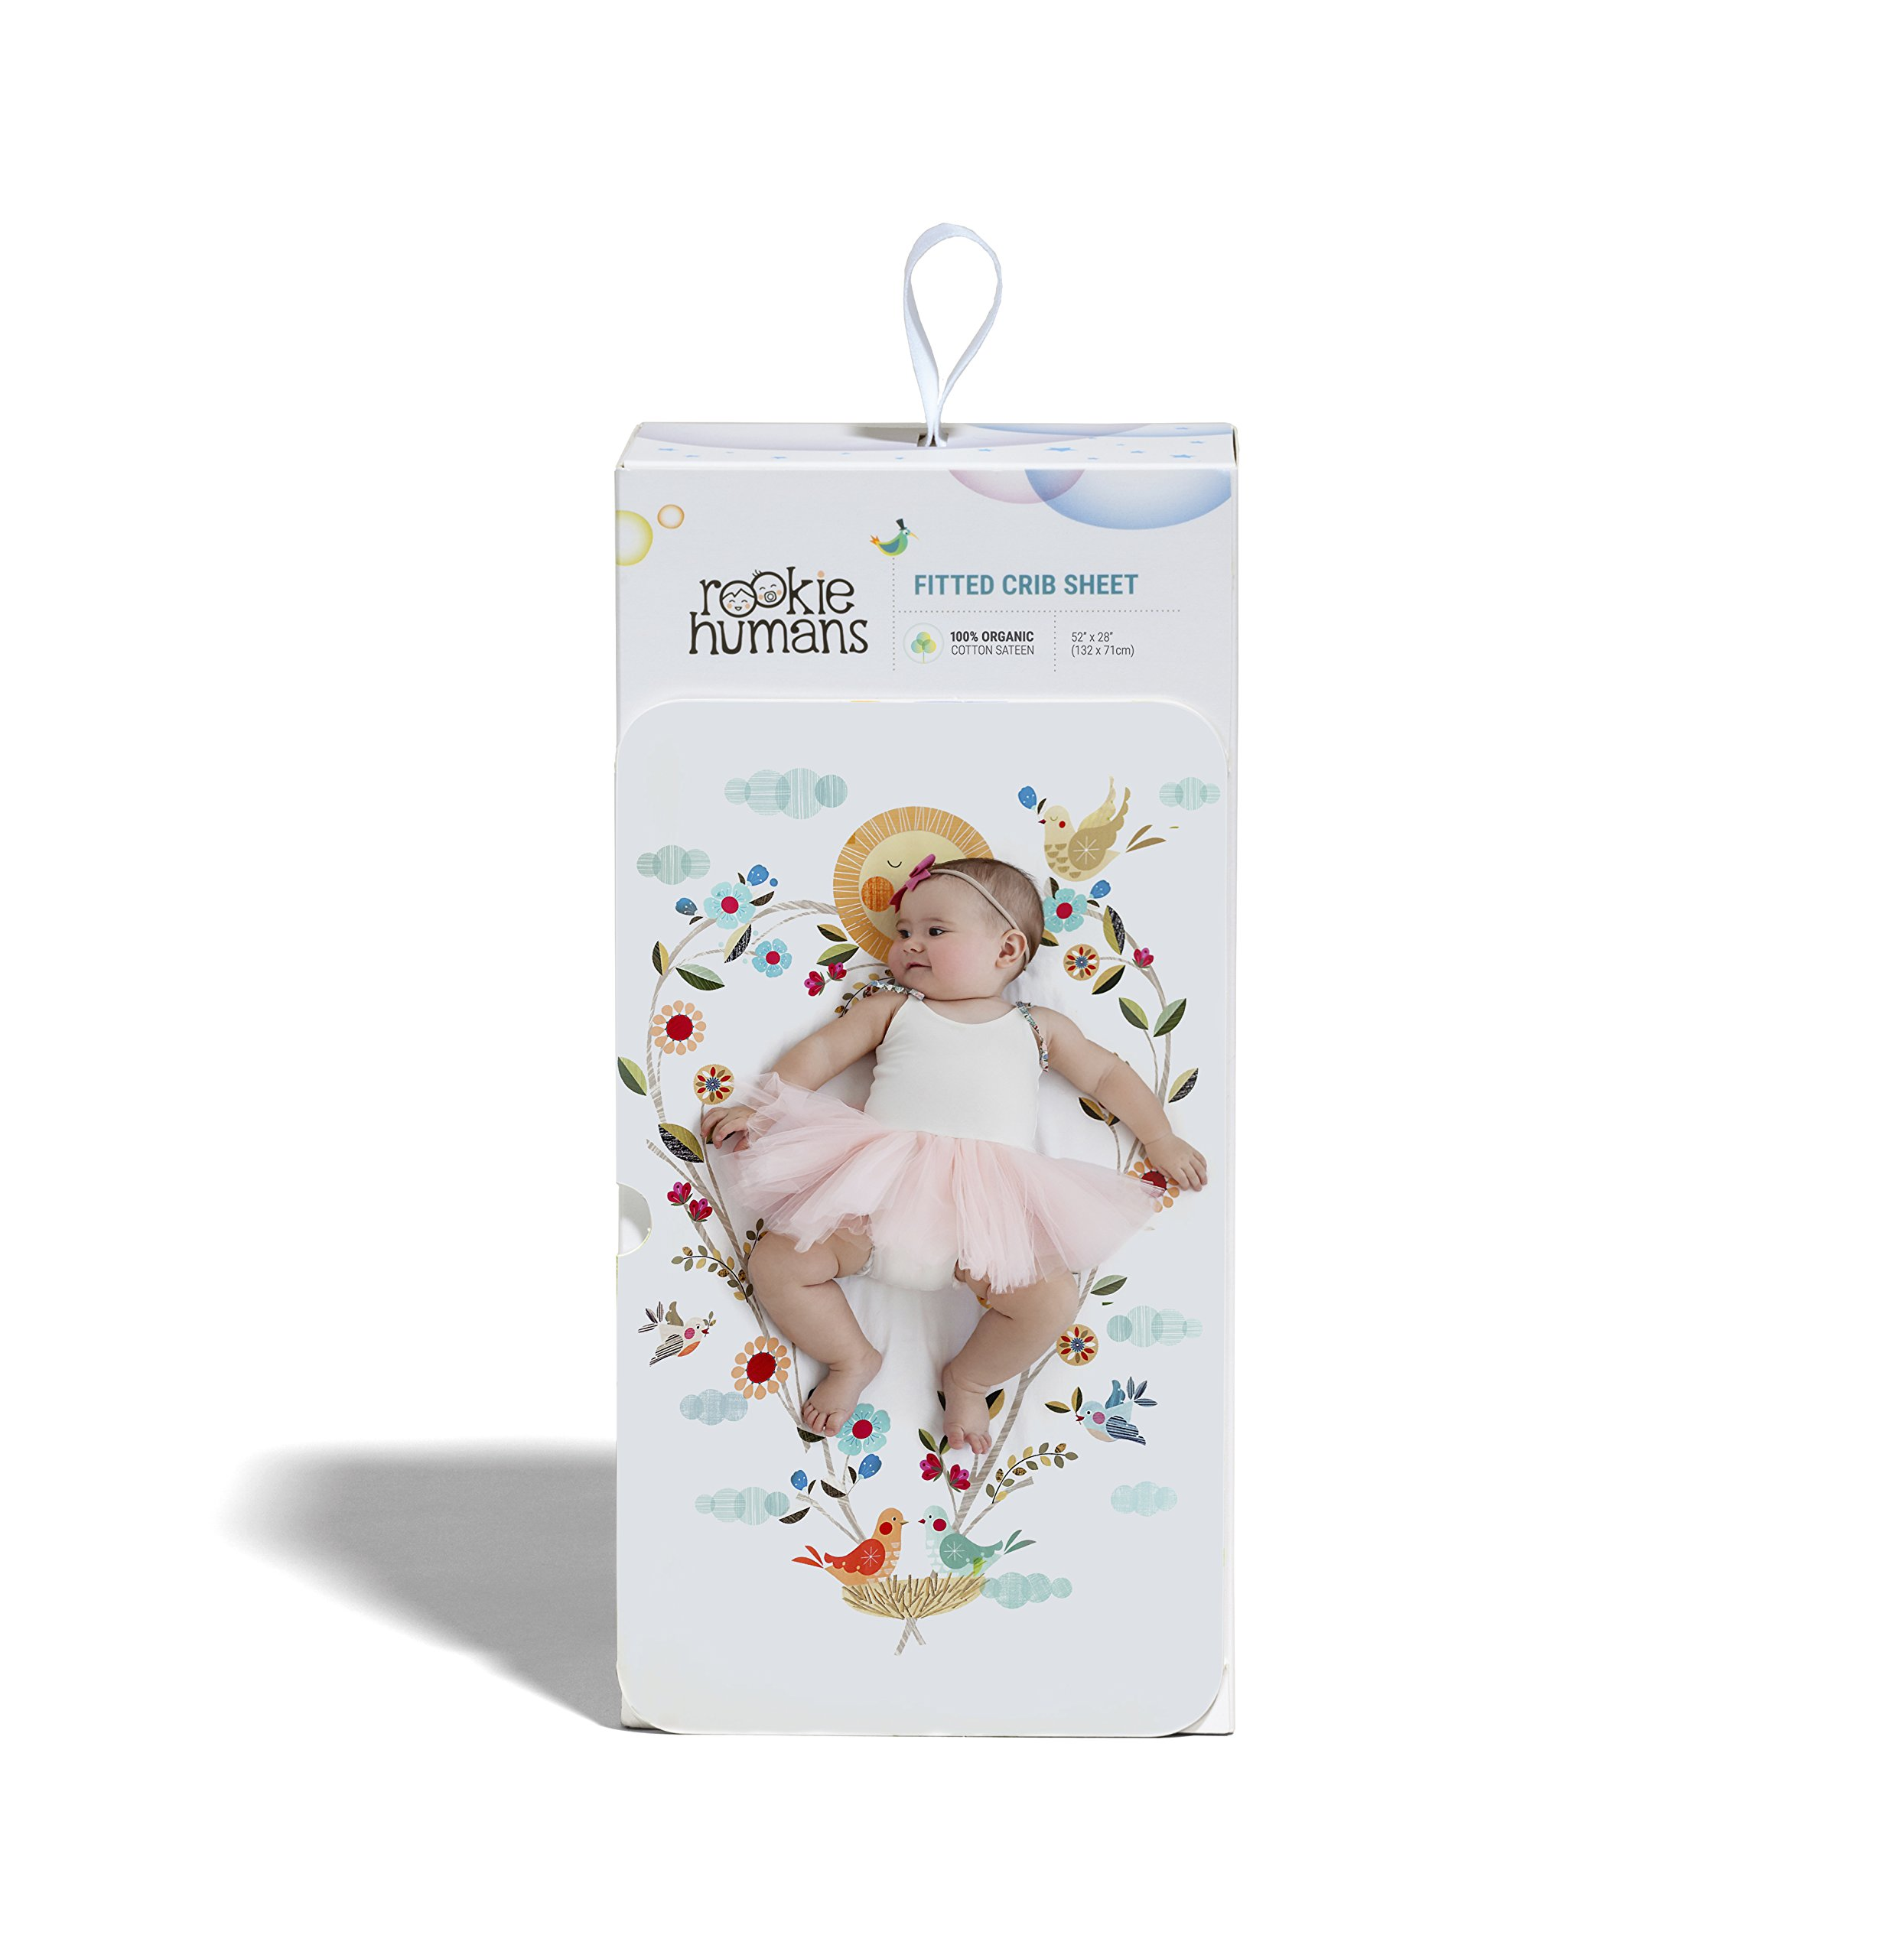 Rookie Humans 100% Organic Cotton Sateen Fitted Crib Sheet: Love Blooms. Complements Modern Nursery Room, Use as a Photo Background for Your Baby Pictures. Standard crib size (52 x 28 inches). by Rookie Humans (Image #3)